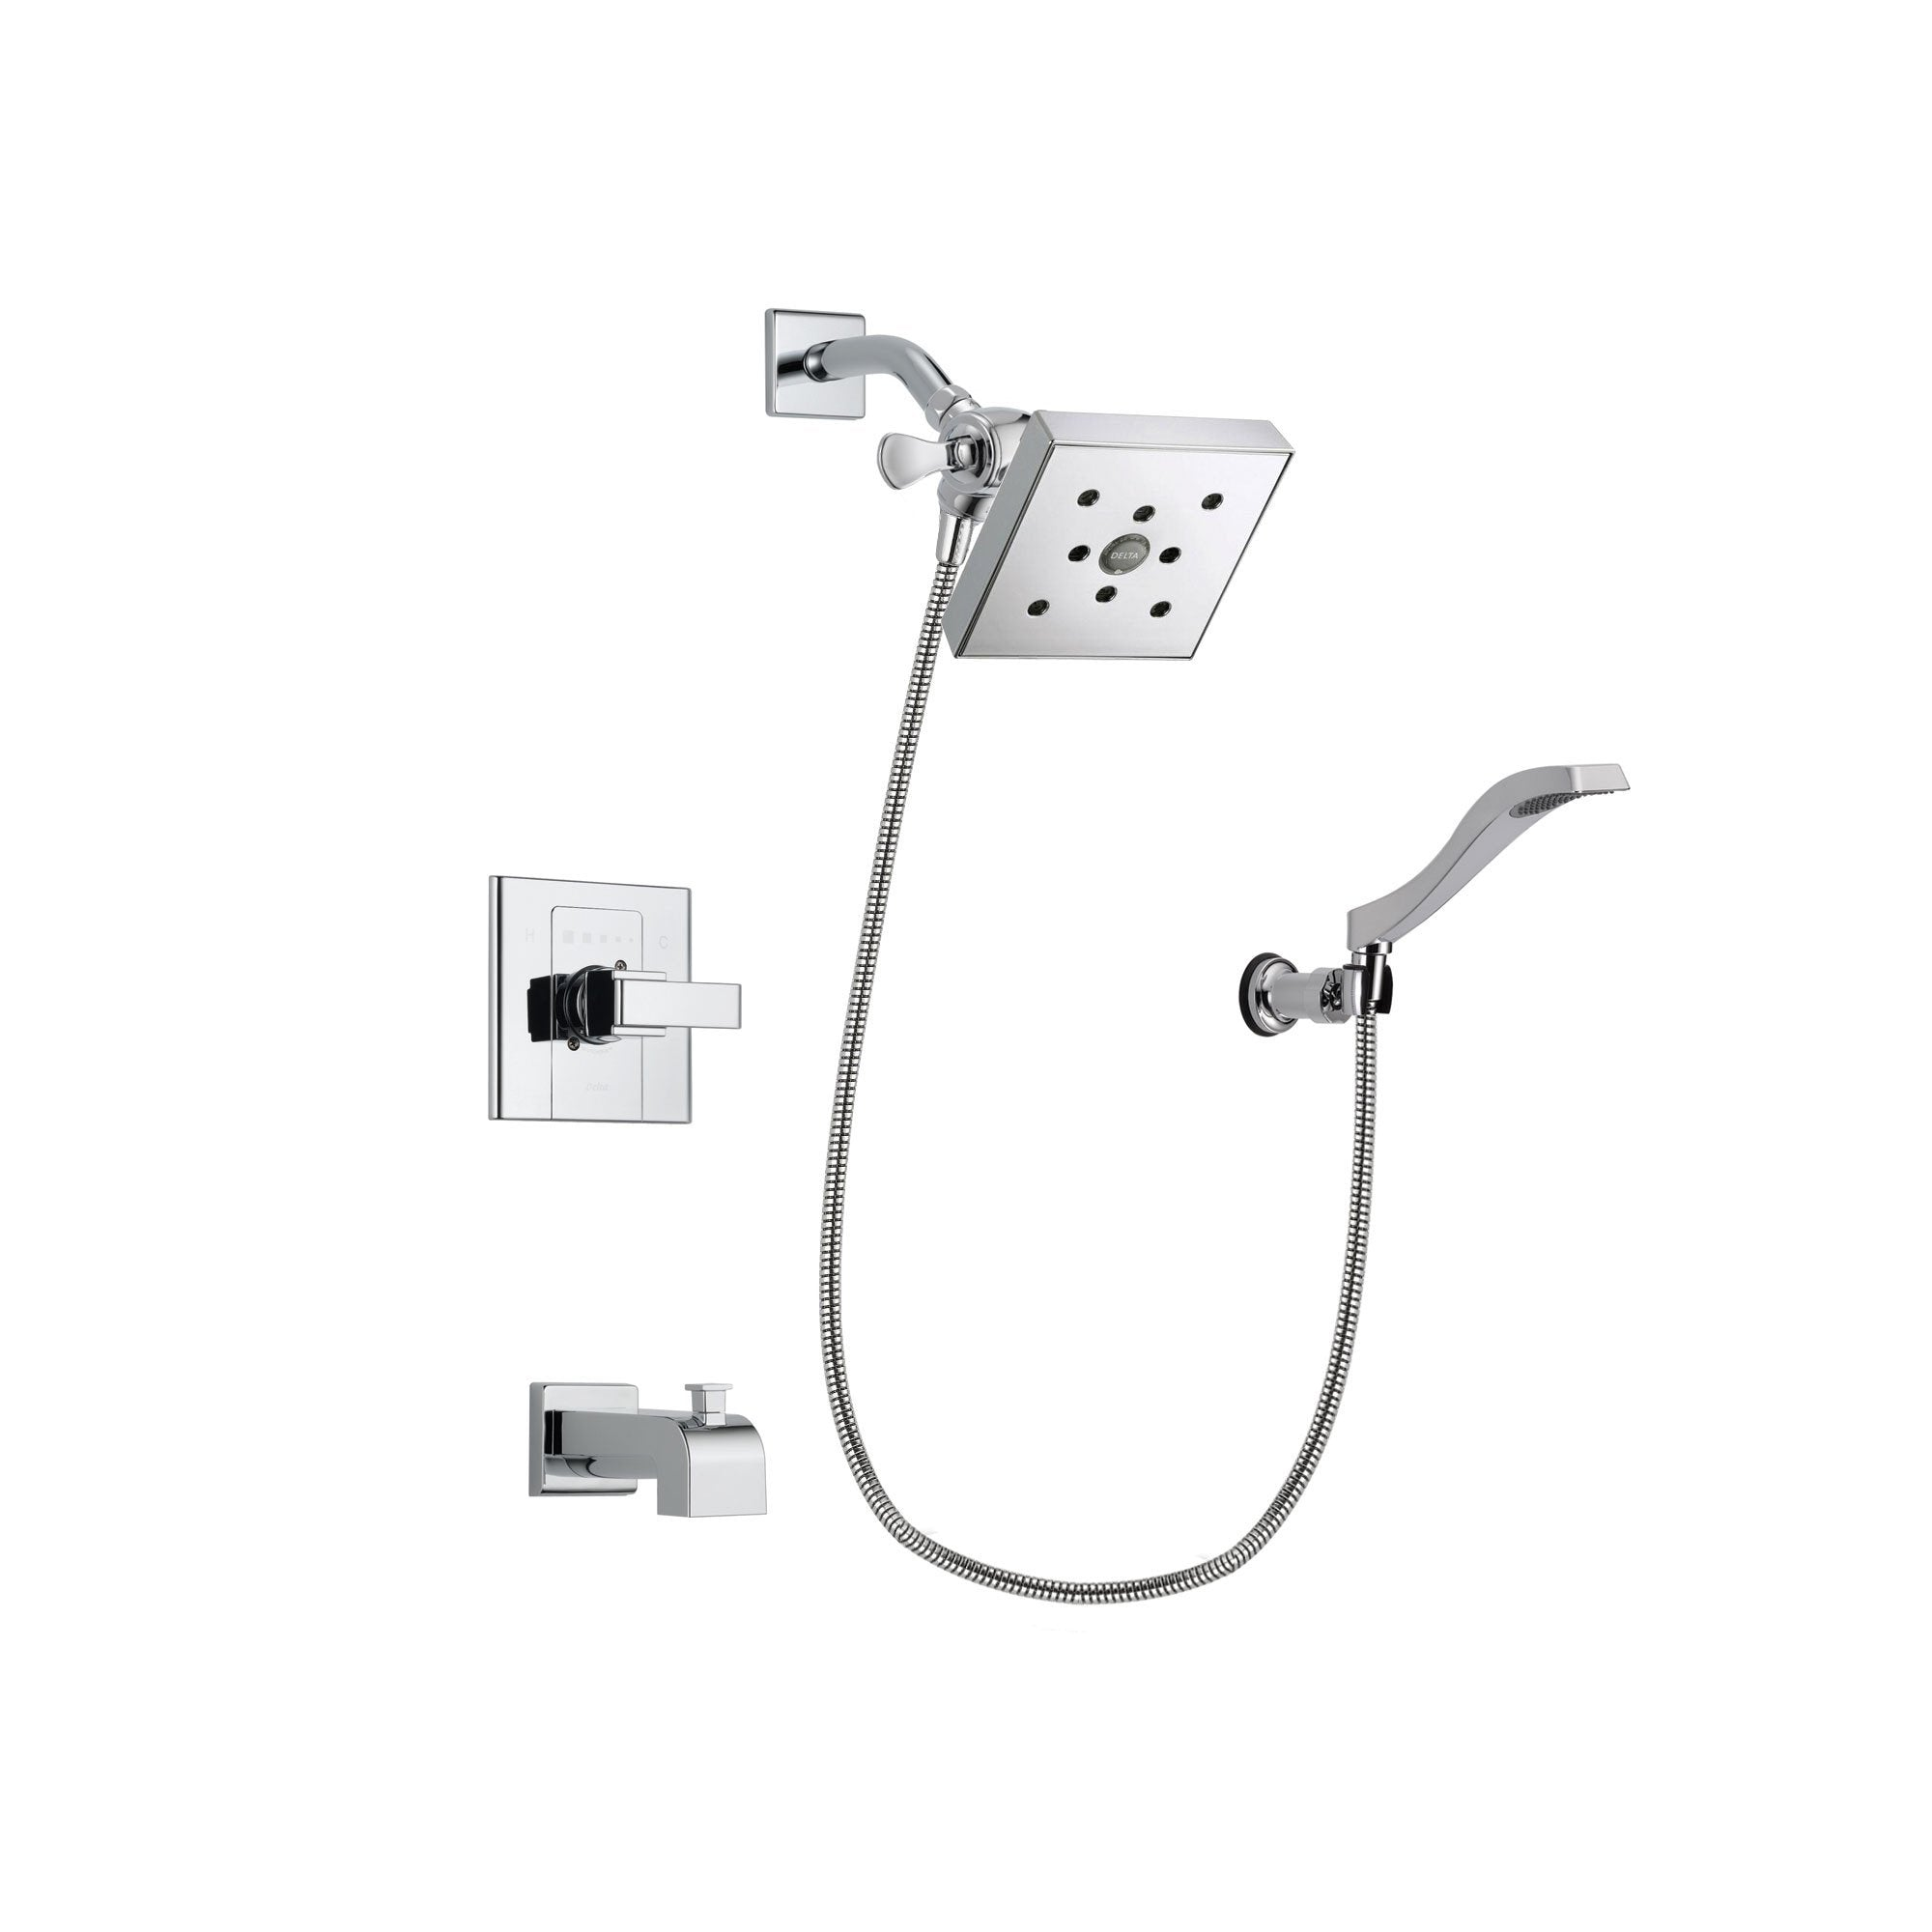 Delta Arzo Chrome Finish Tub and Shower Faucet System Package with Square Shower Head and Modern Handheld Shower Spray with Wall Bracket and Hose Includes Rough-in Valve and Tub Spout DSP0043V